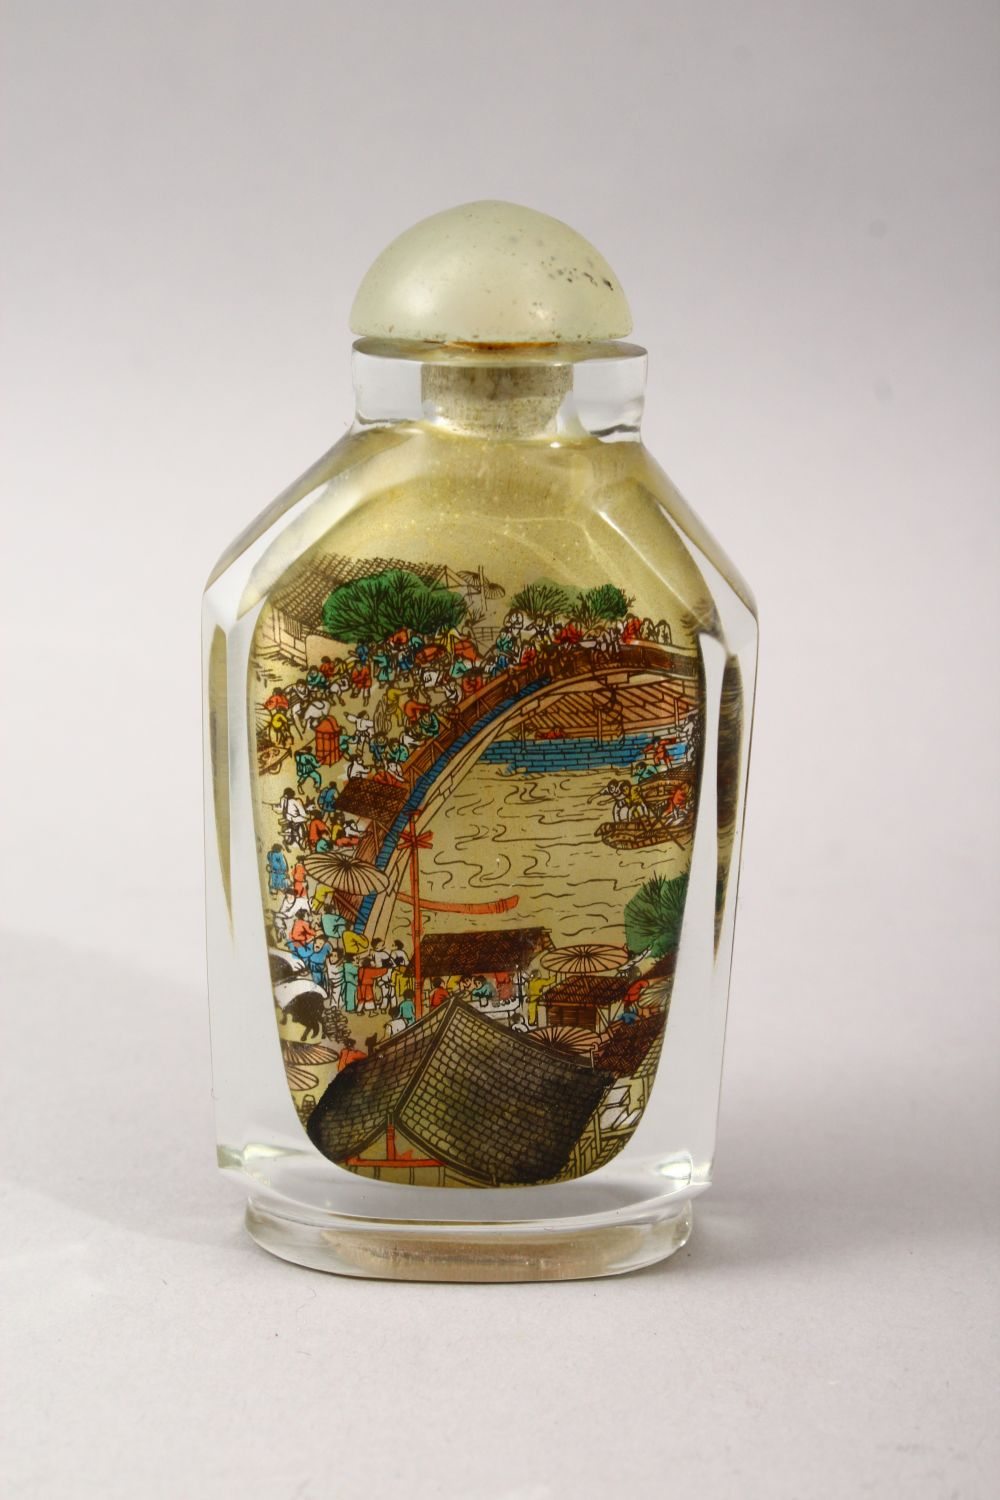 A GOOD 19TH / 20TH CENTURY CHINESE REVERSE PAINTED GLASS SNUFF BOTTLE, the bottle painted to - Image 2 of 3